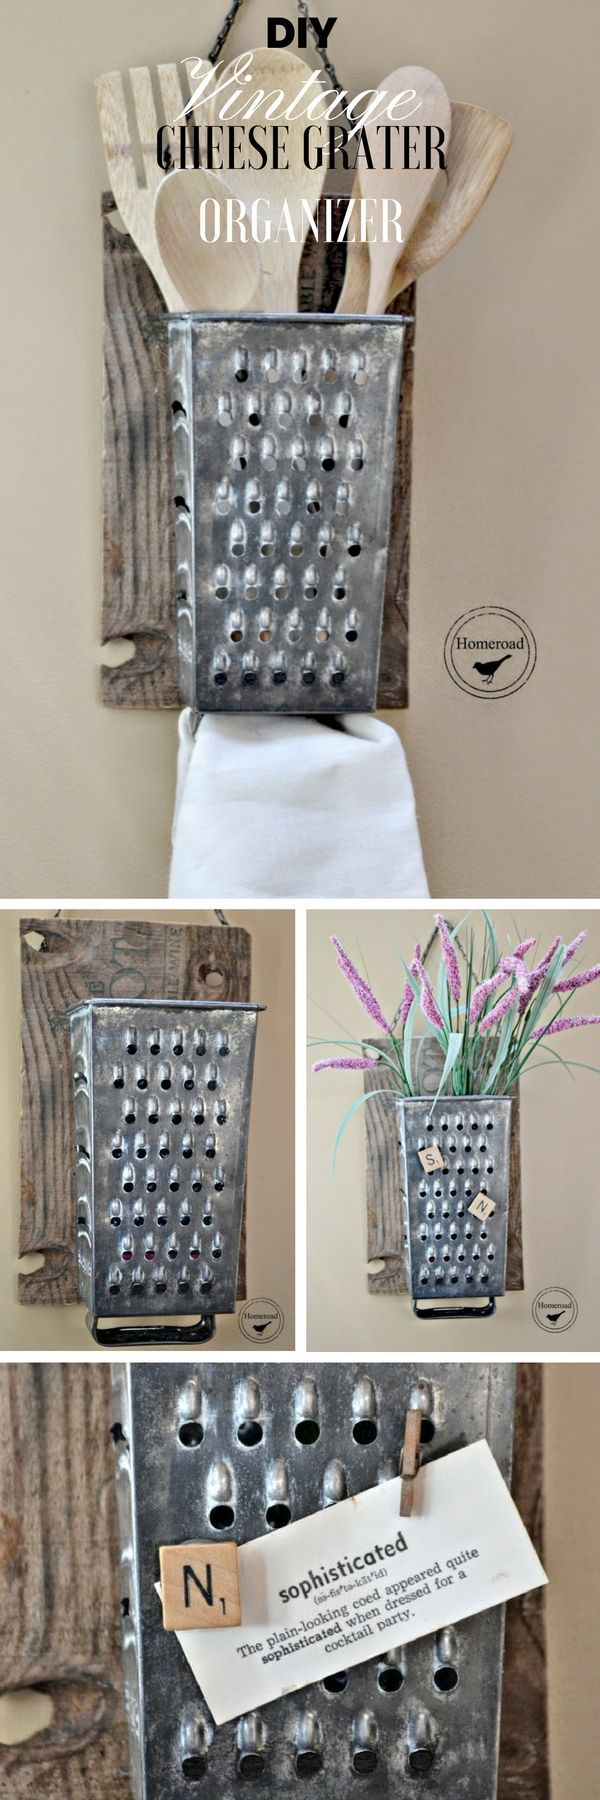 15 organization diys that will make your kitchen pretty diy crafts homediy home decor